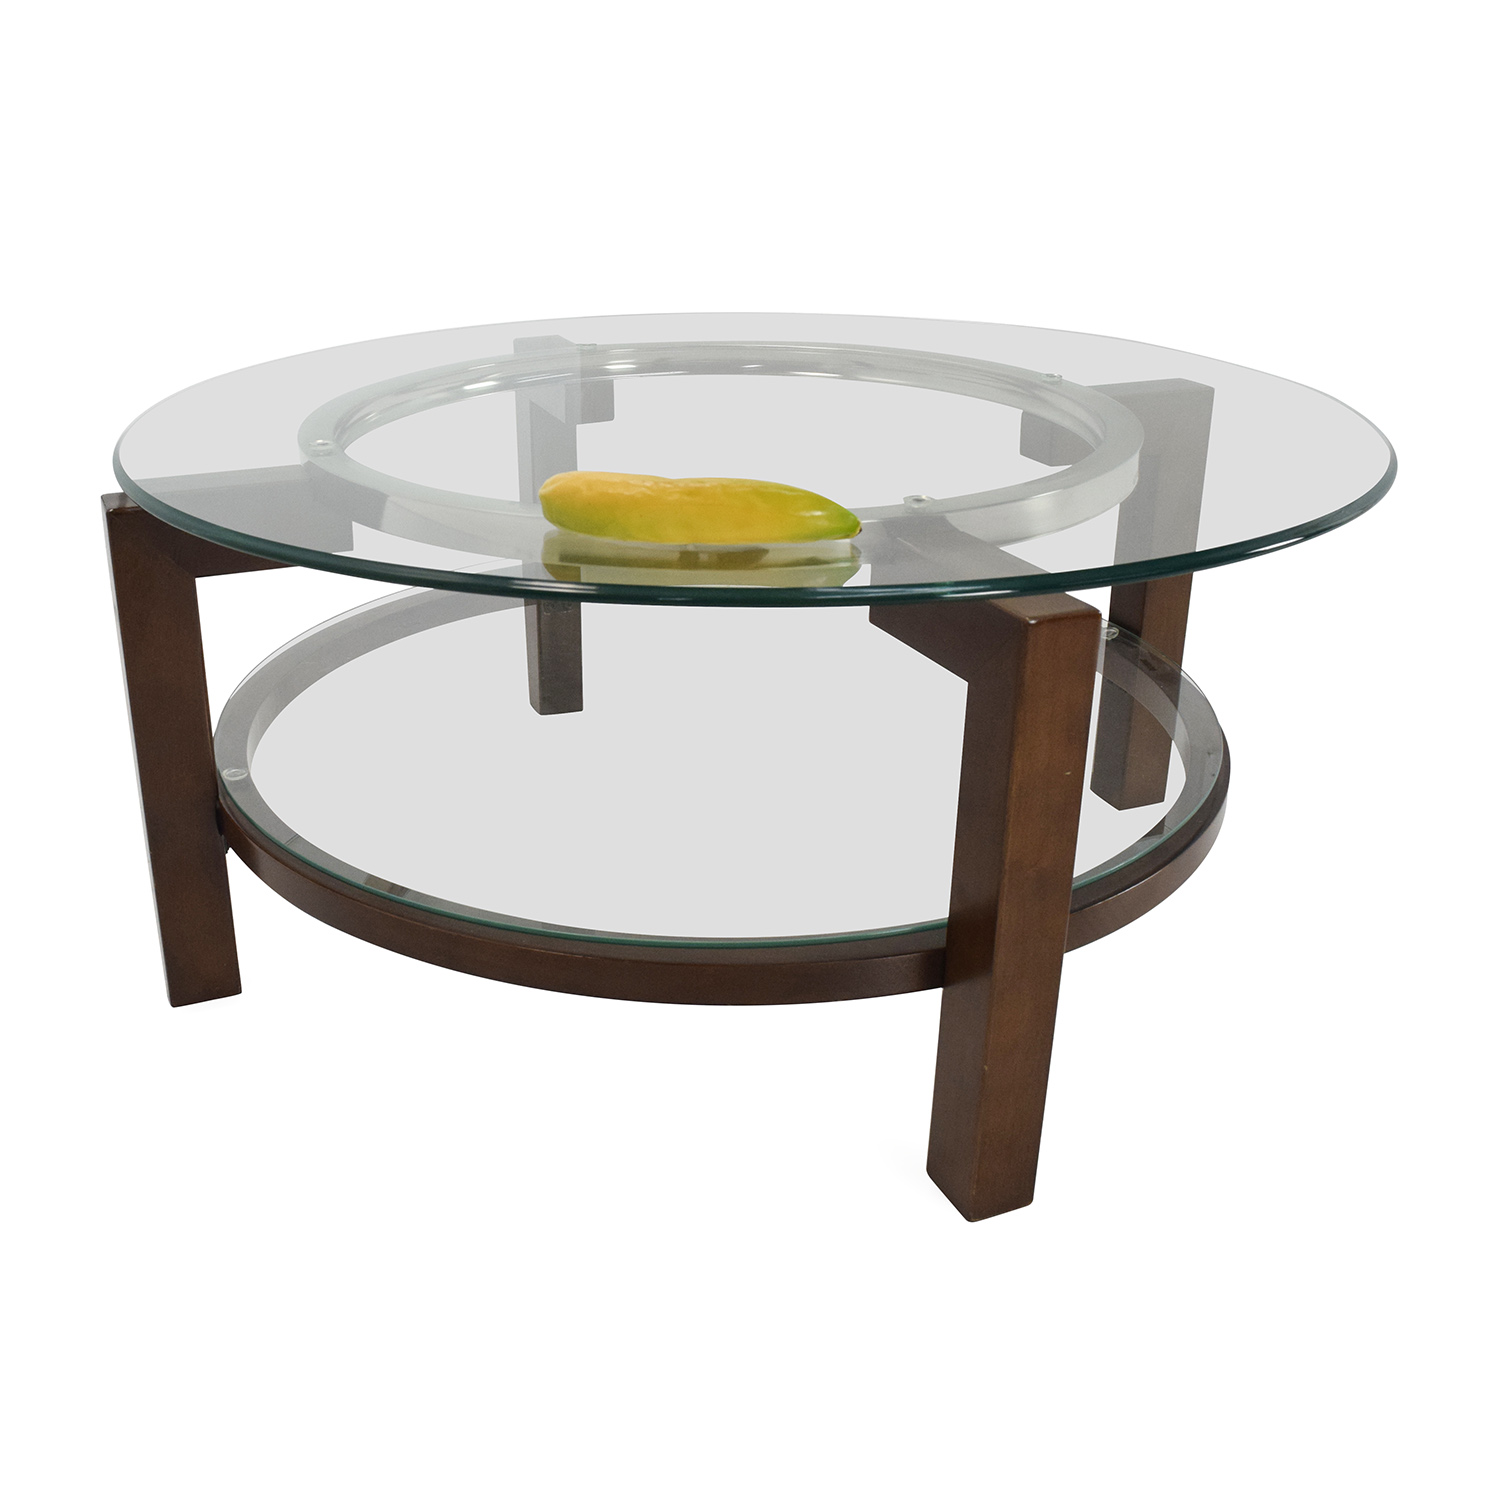 88 off macy 39 s macy 39 s glass top coffee table tables Glass top for coffee table